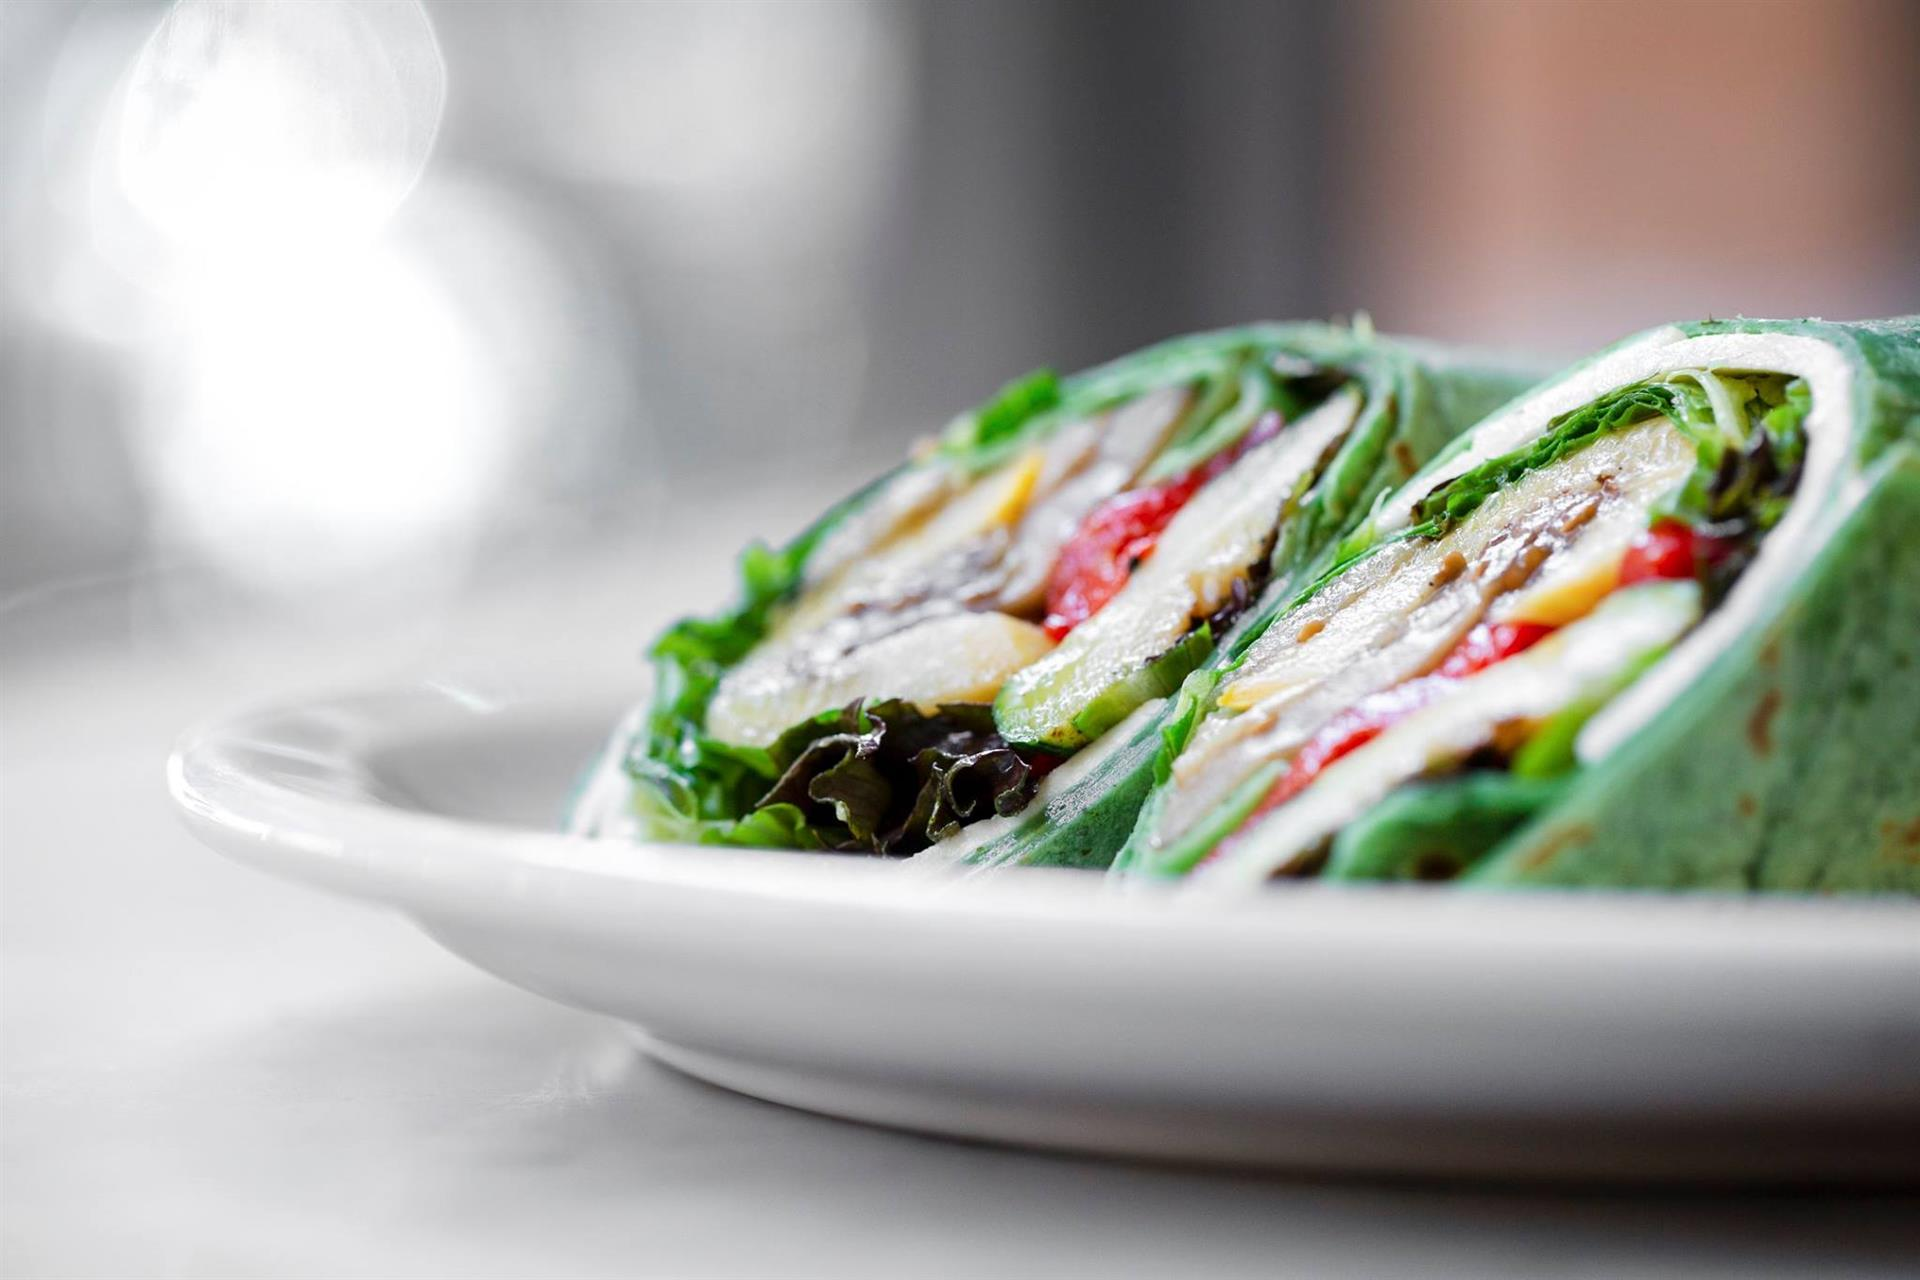 Spinach wrap stuffed with veggies, peppers, and lettuce